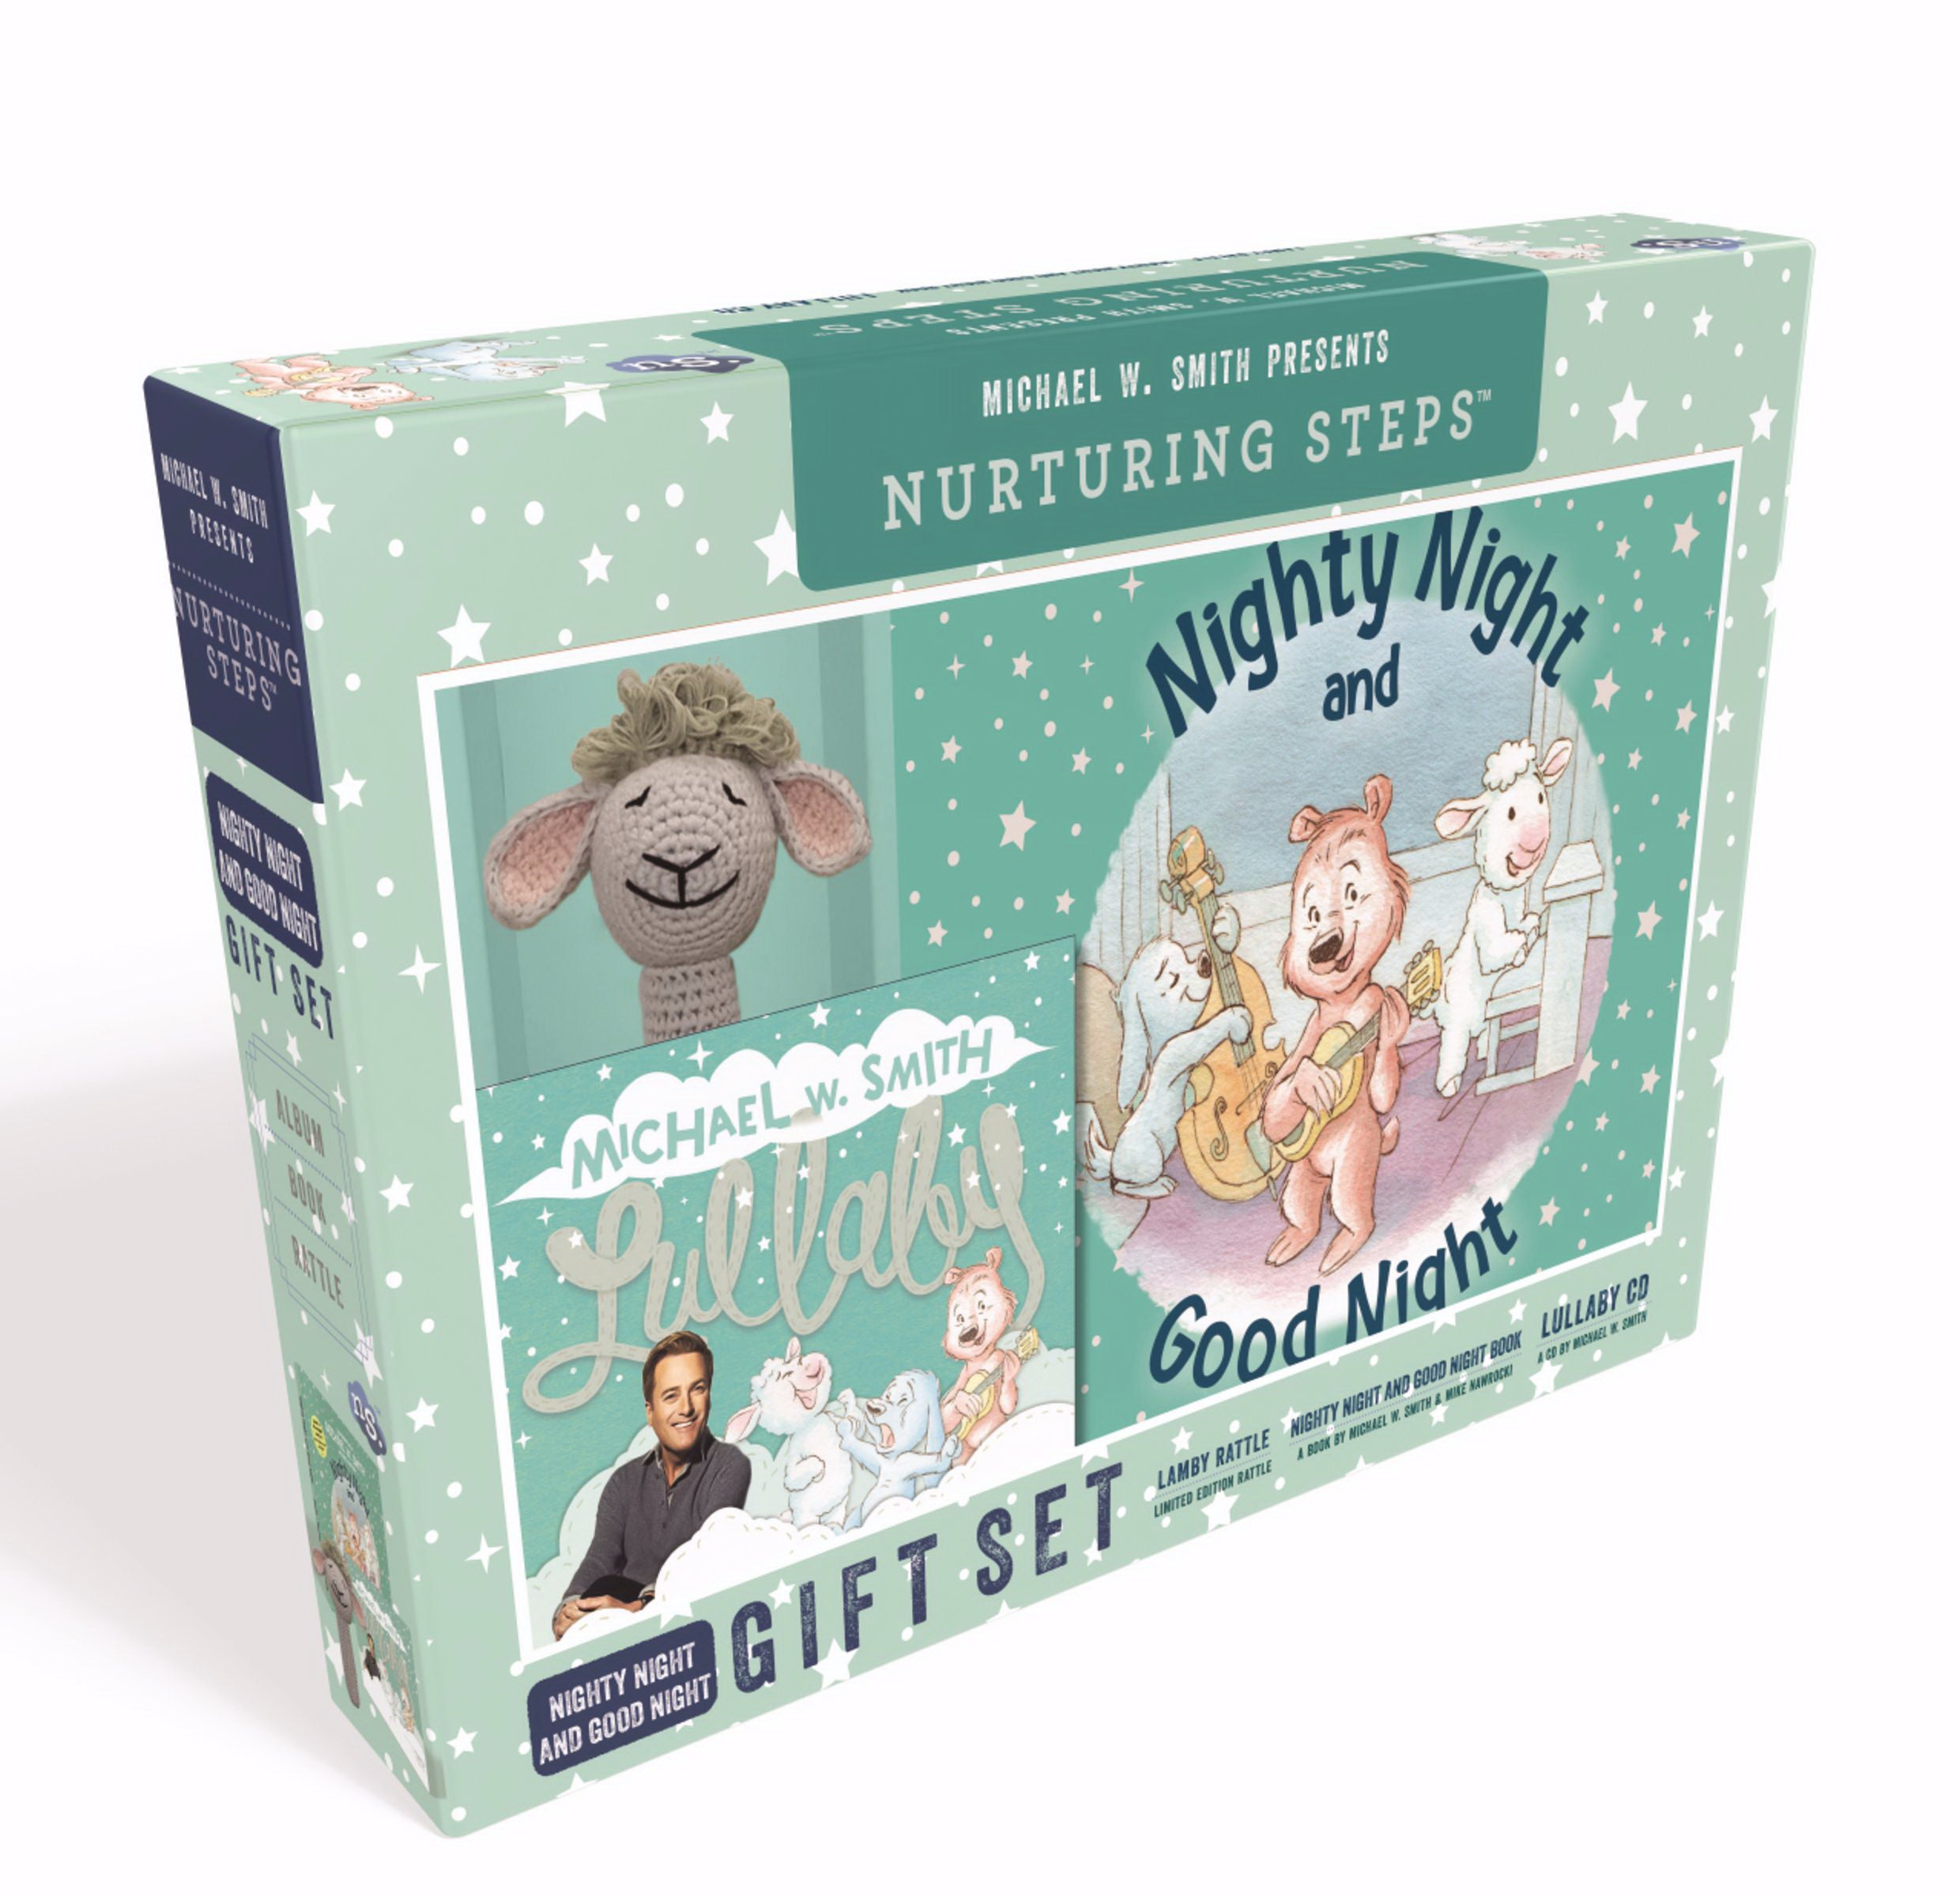 Nighty Night And Good Night Gift Set (Nurturing Steps)